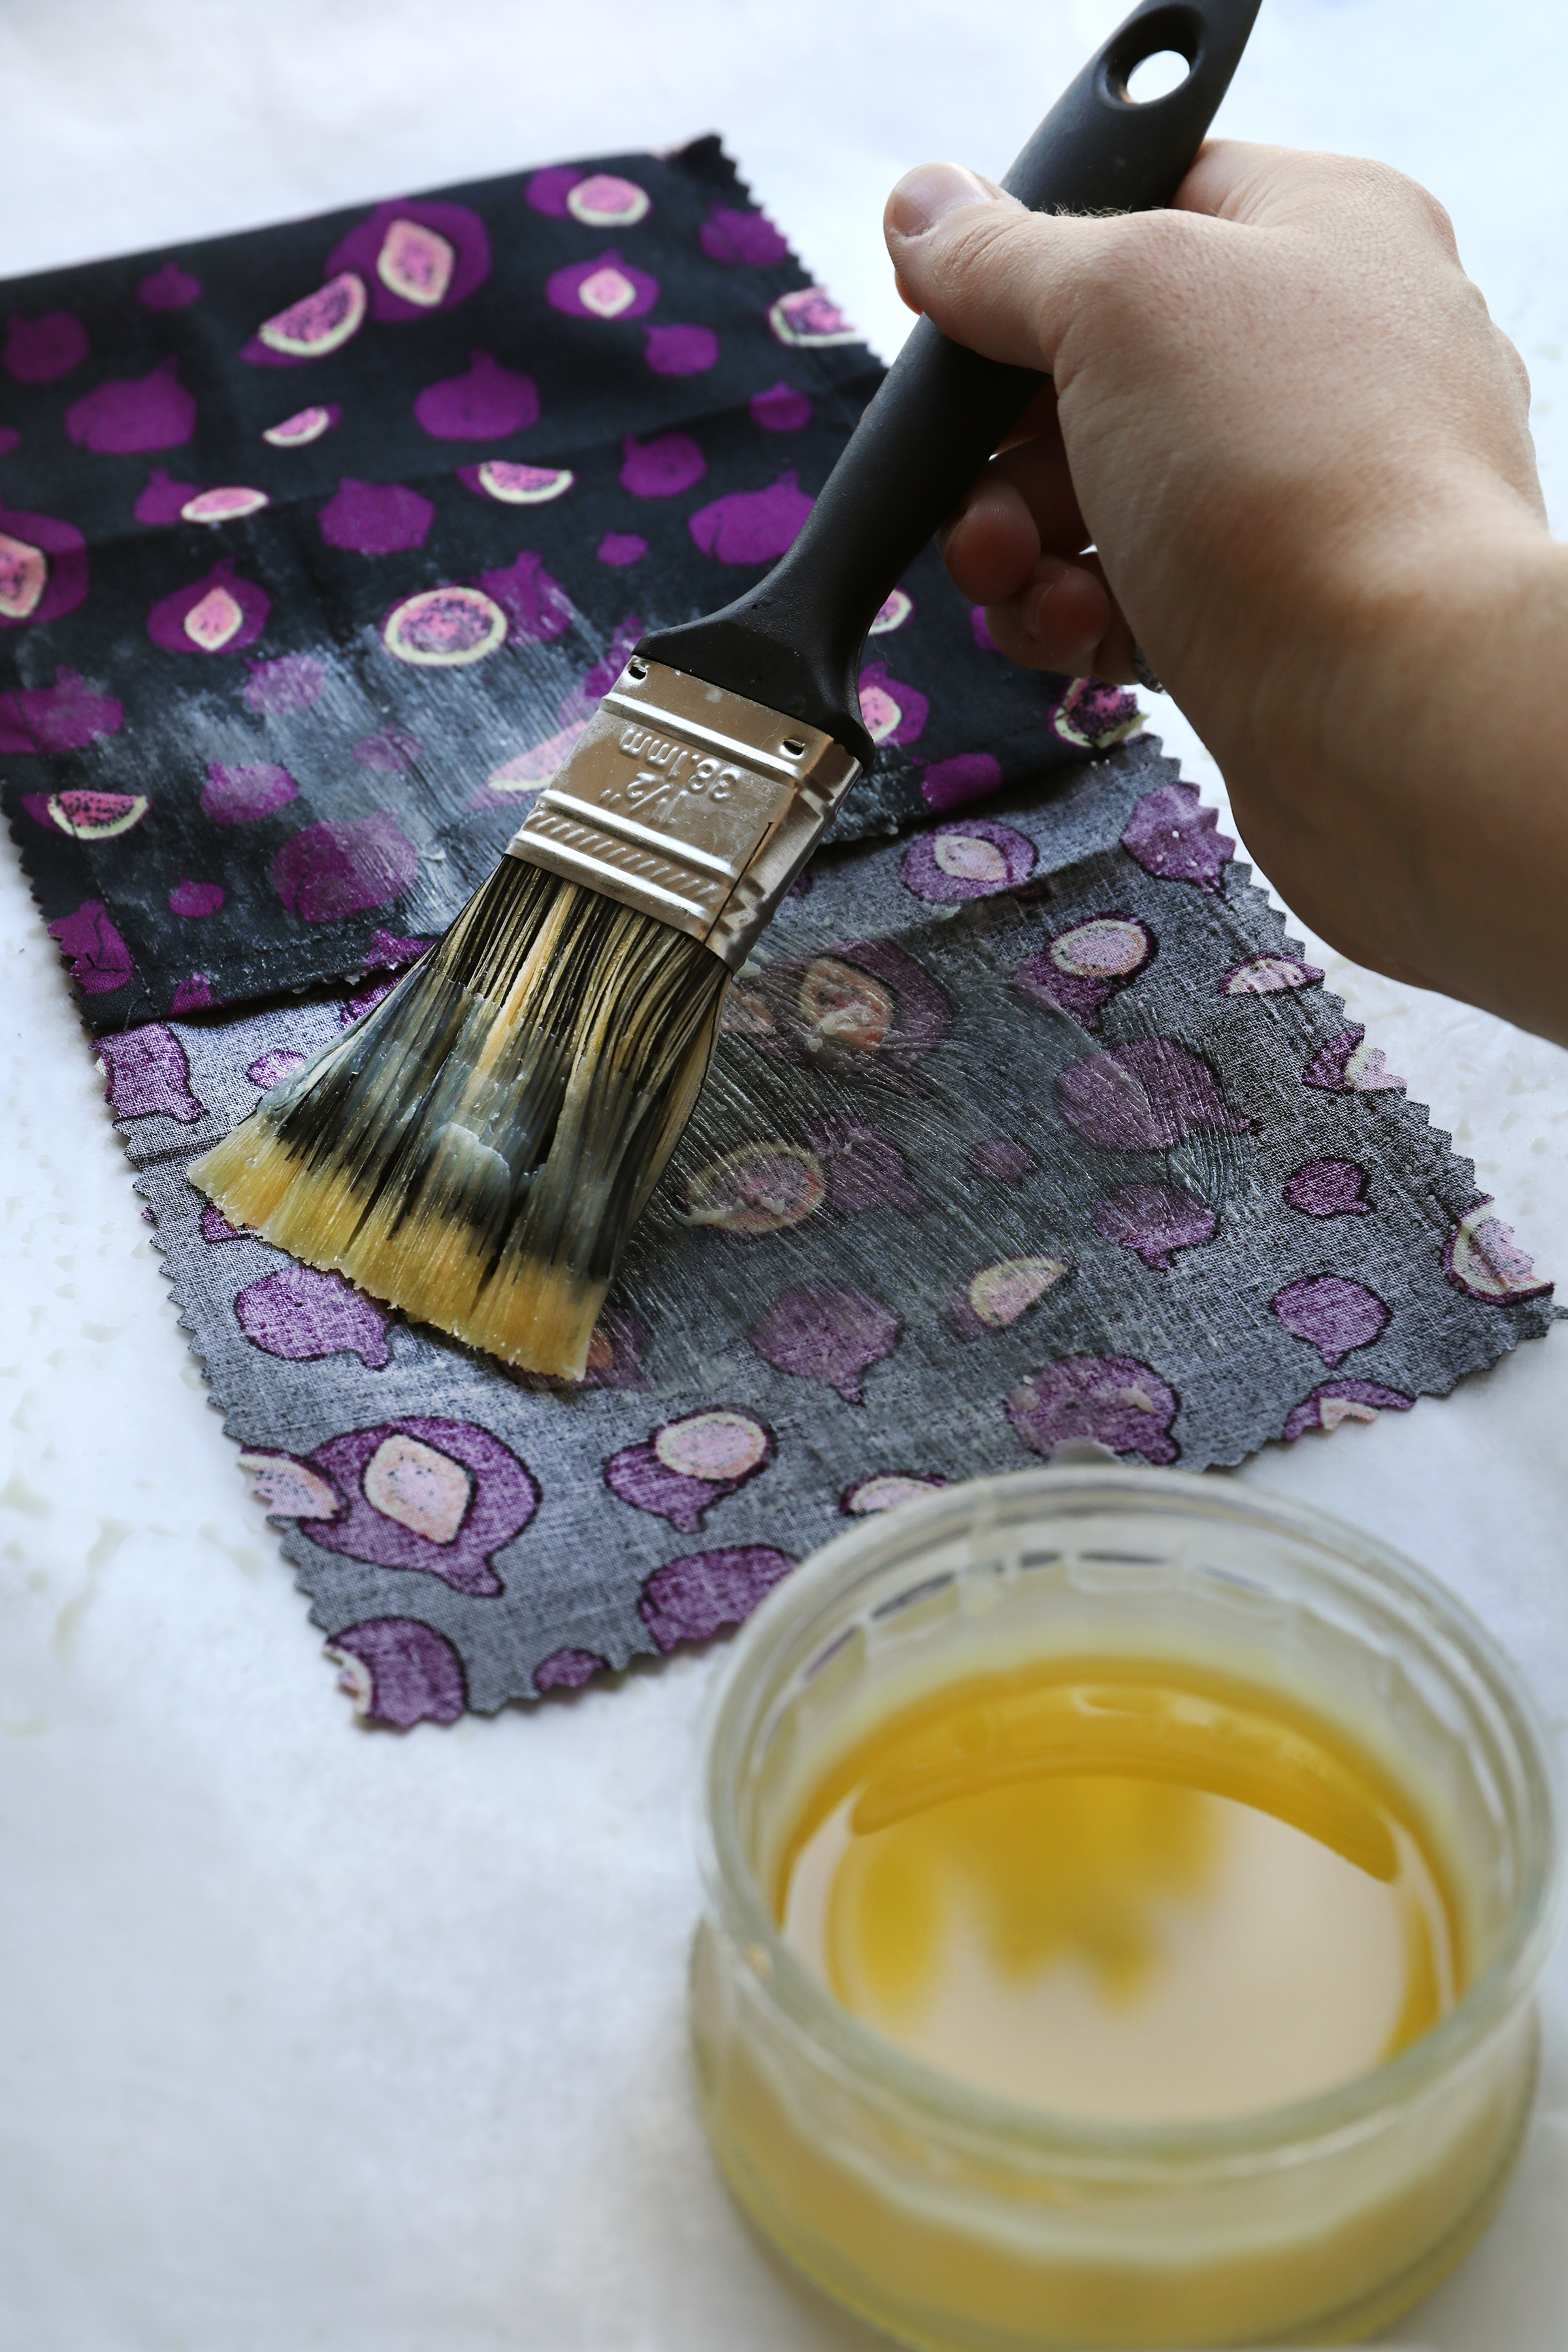 Hand with brush applying golden substance to decorative cloth for DIY food wrap